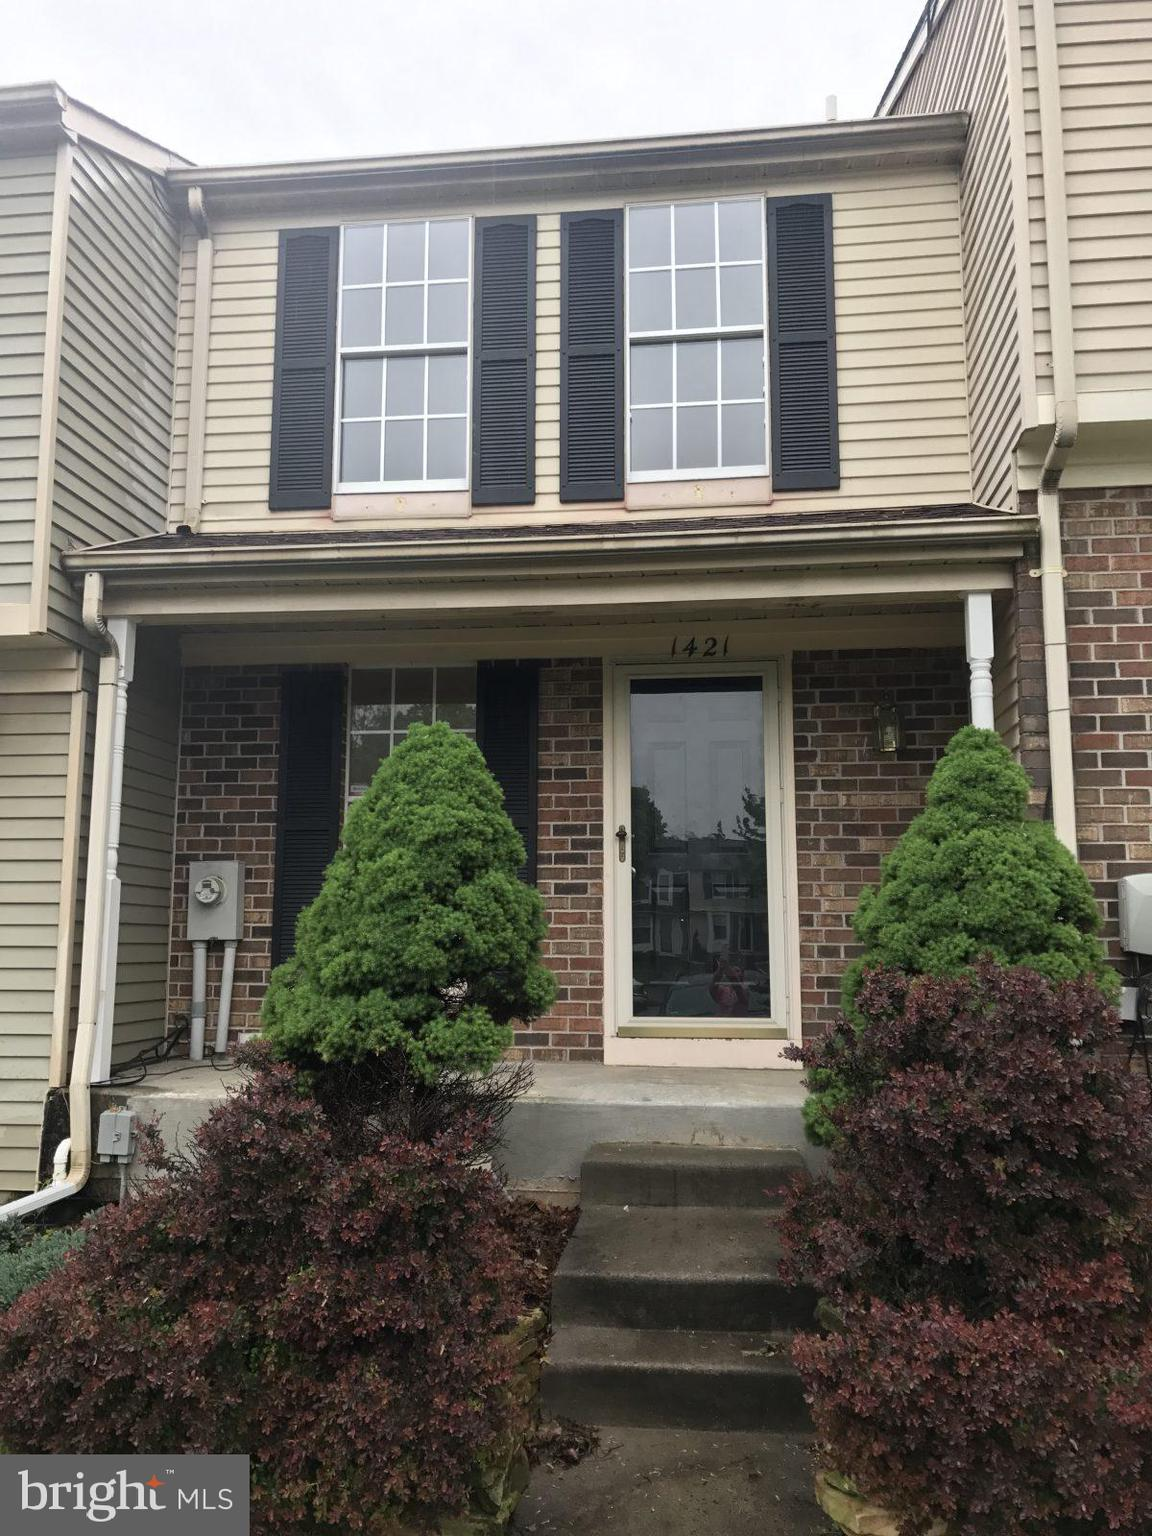 1421 TARRAGON COURT, BELCAMP, MD 21017